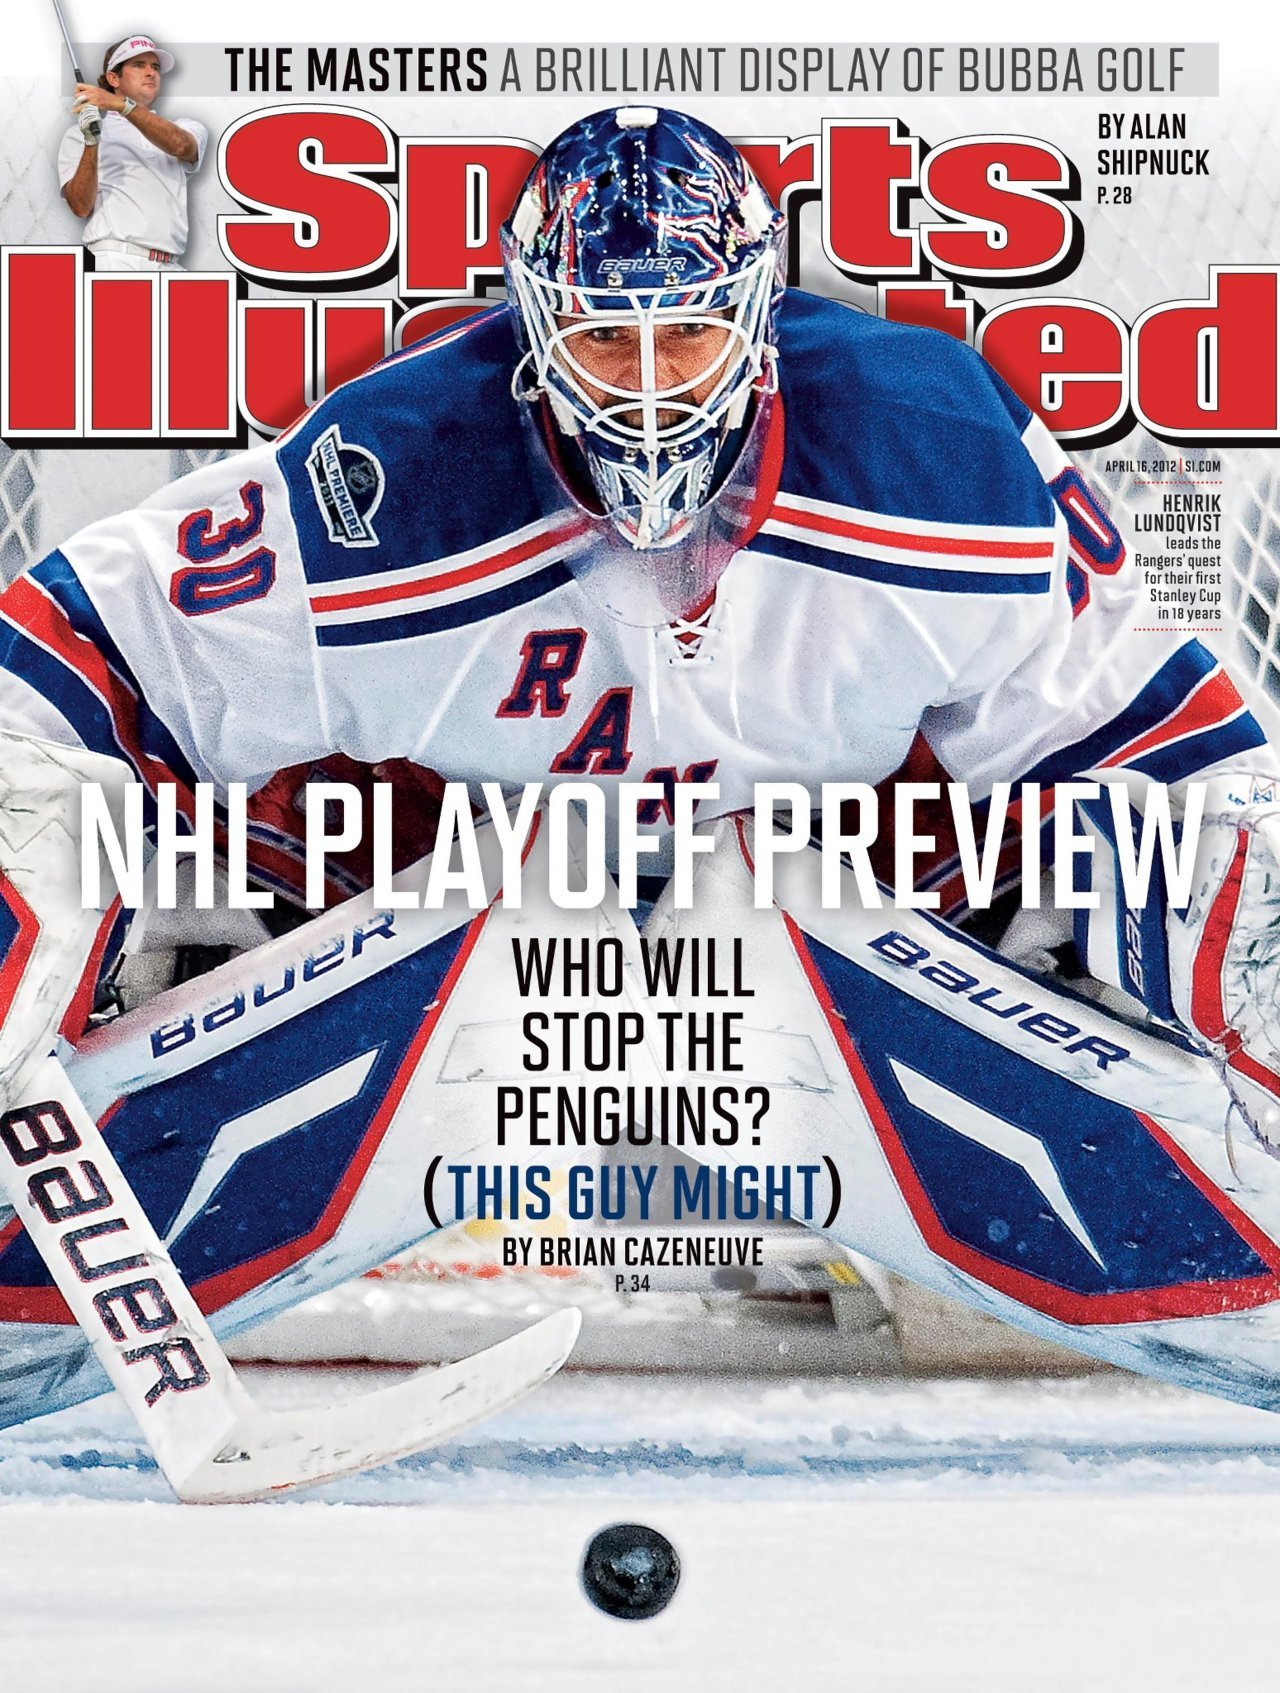 New York Rangers goalie Henrik Lundqvist on the cover of this week's Sports Illustrated.